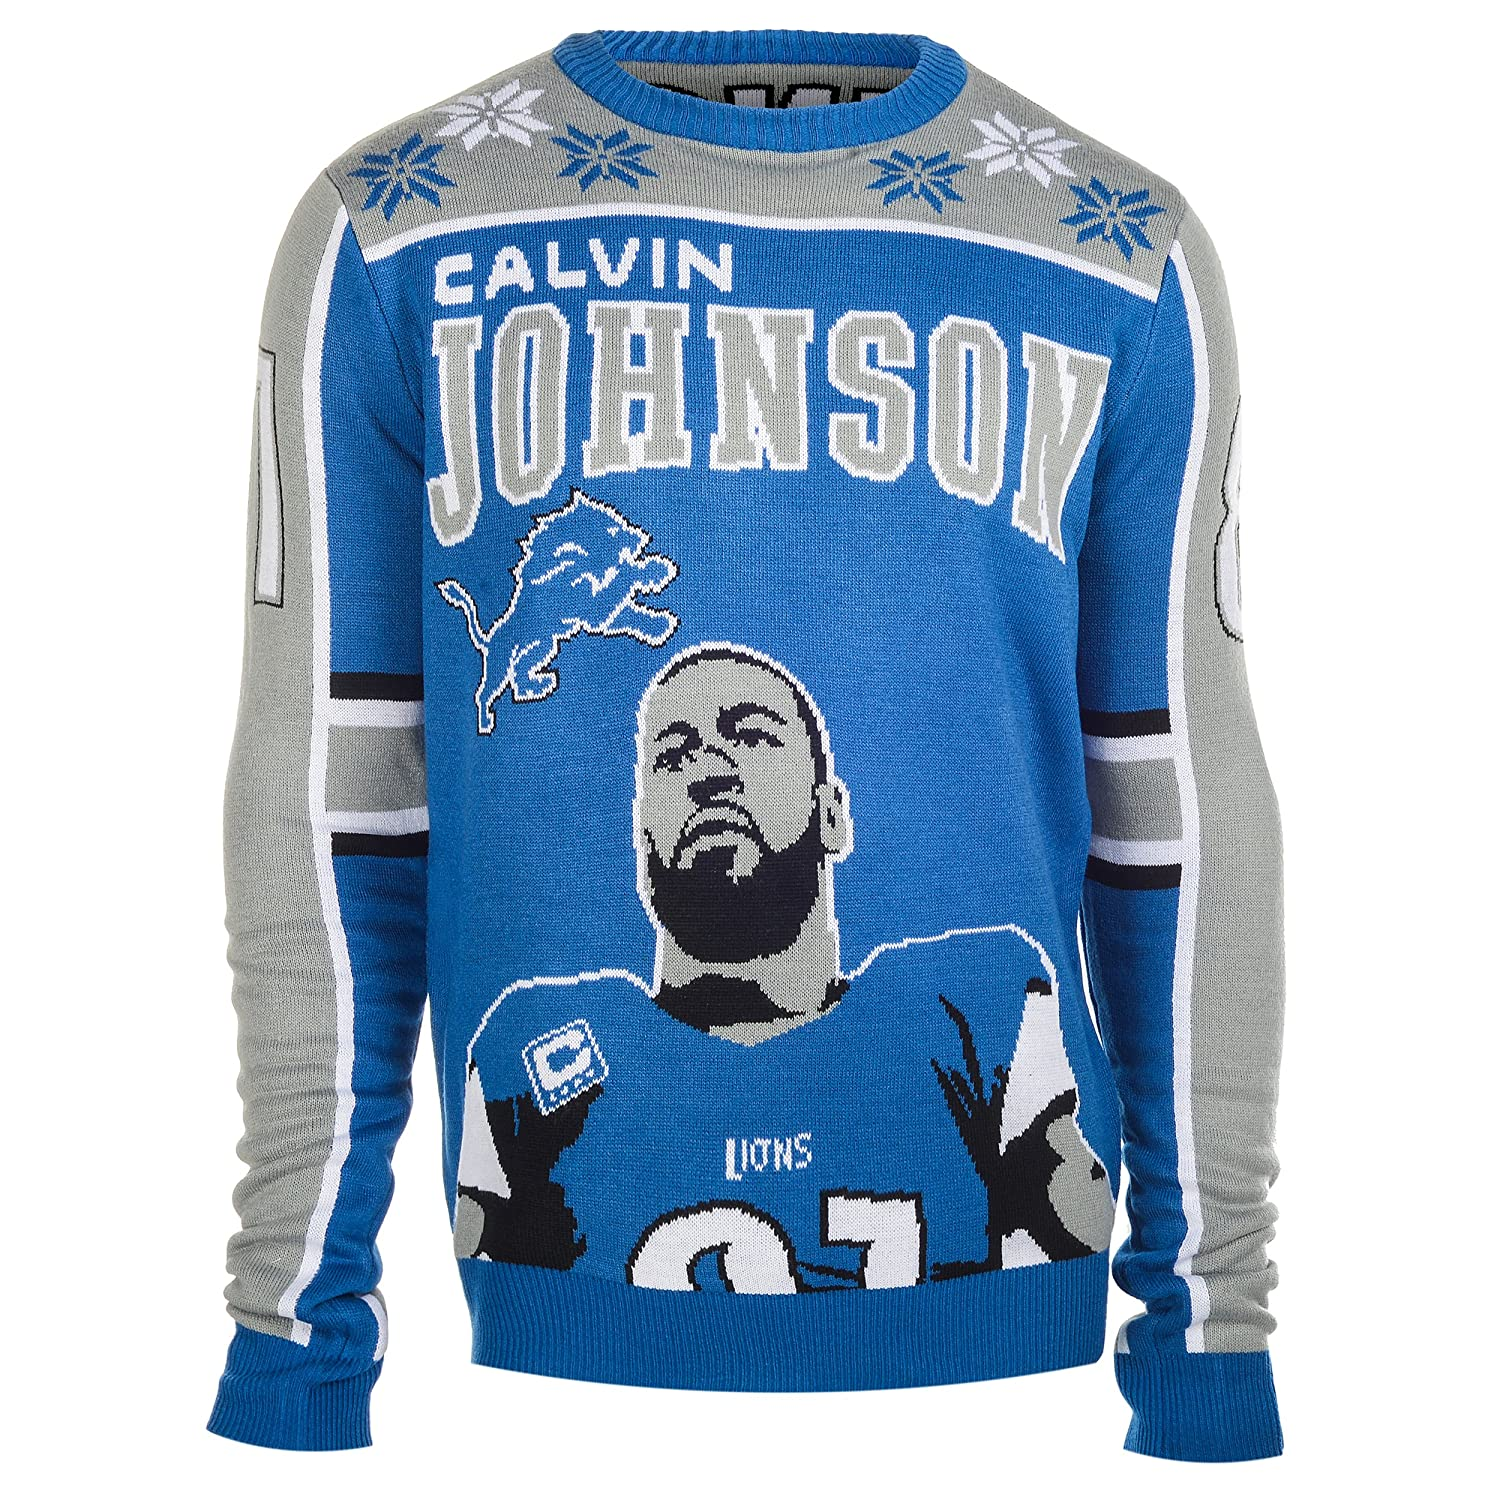 Amazon.com : NFL Football 2015 Player Holiday Ugly Sweater ...